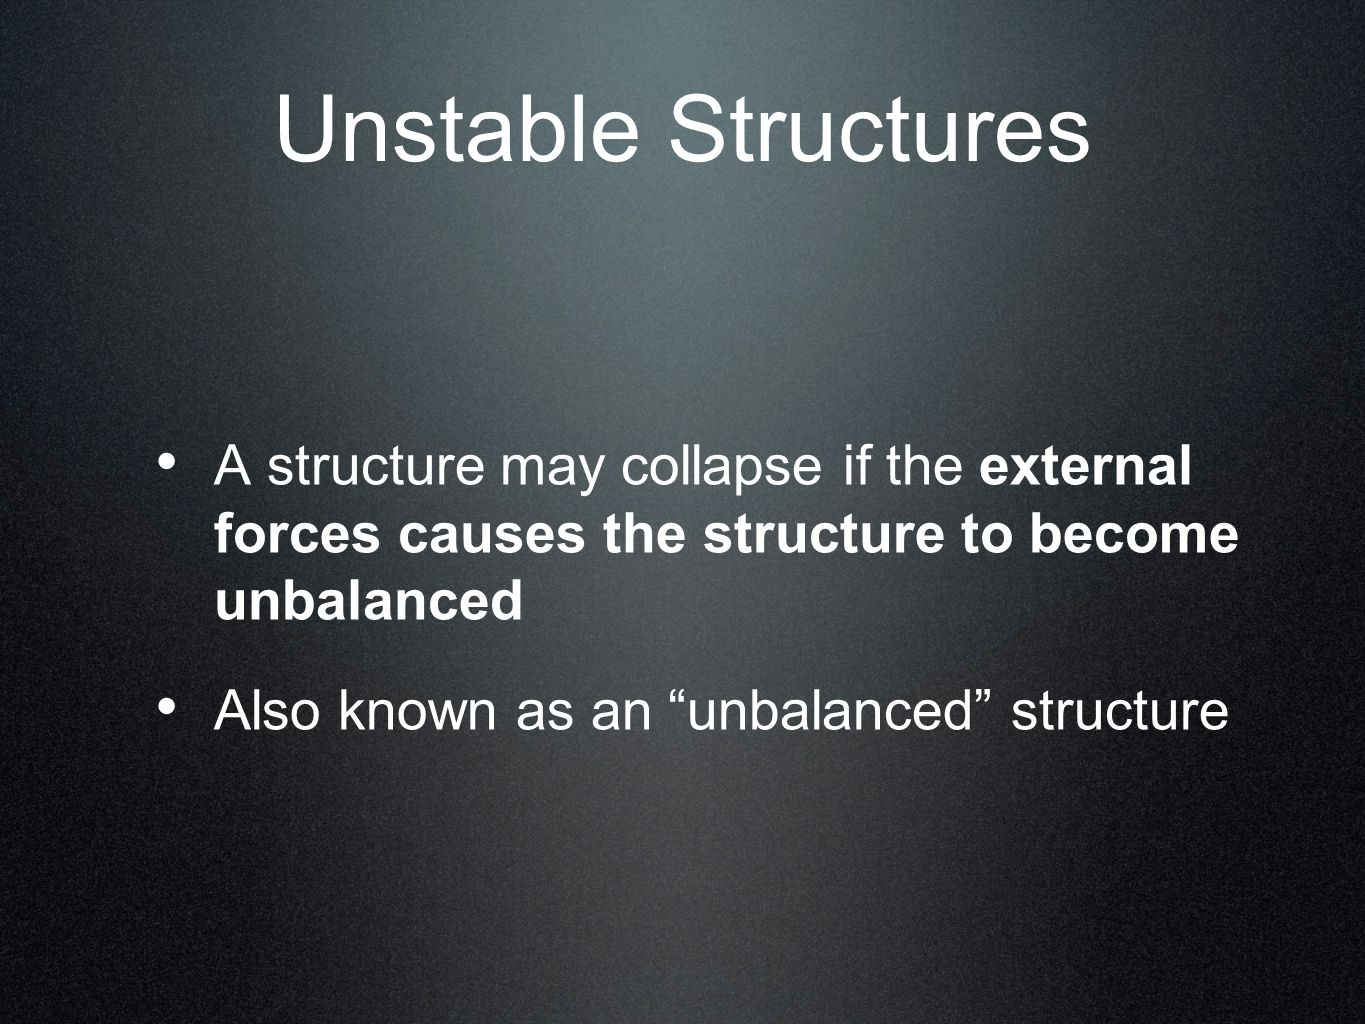 Unstable Structures A structure may collapse if the external forces causes the structure to become unbalanced.